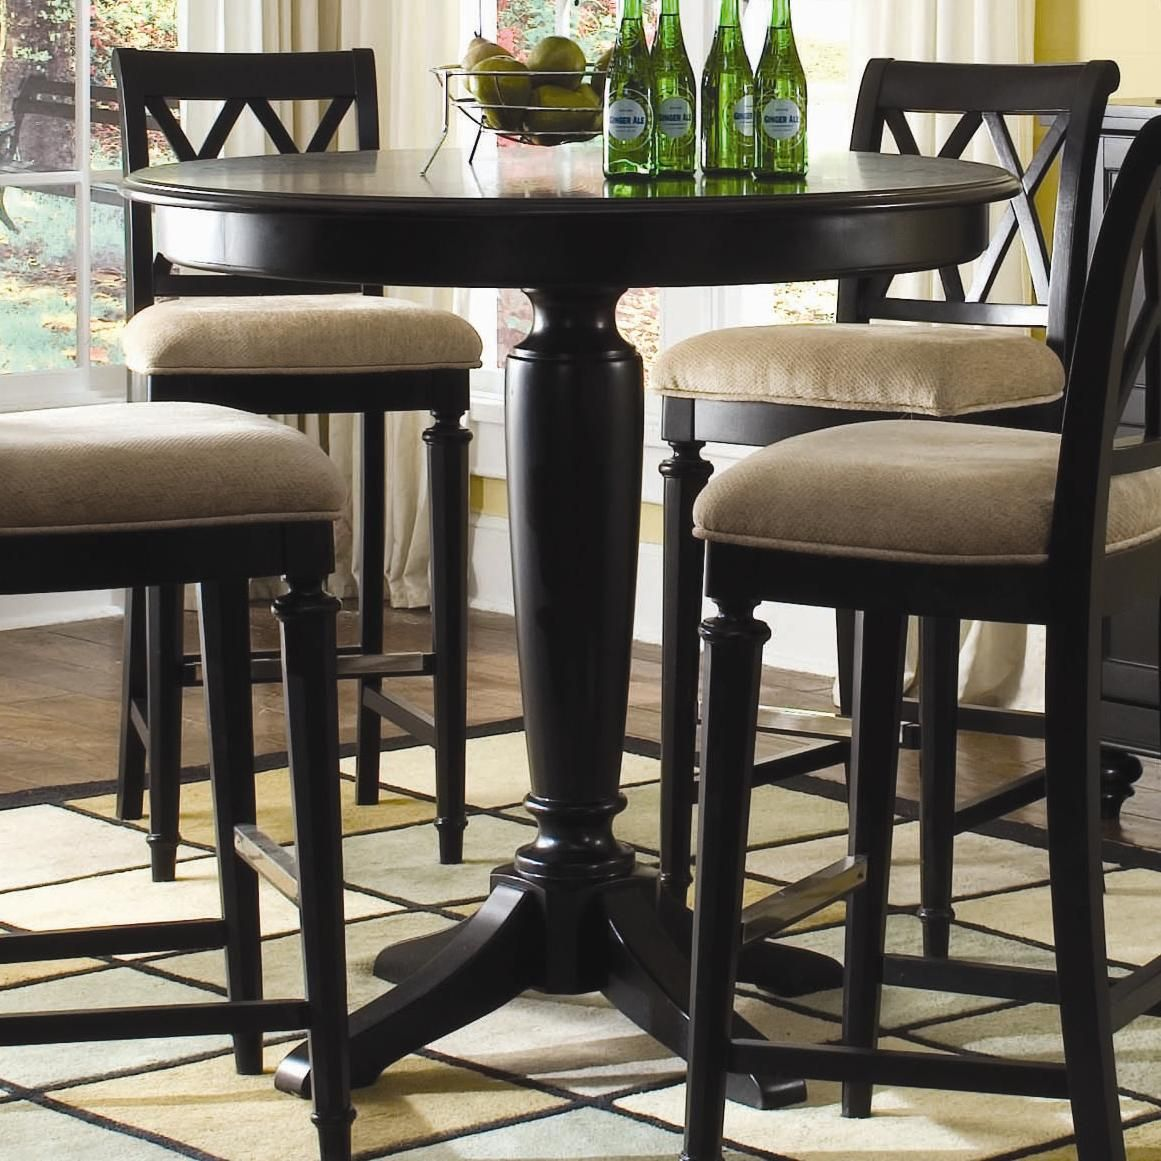 Wondrous Camden Dark 42 Round Bar Height Table By American Drew Onthecornerstone Fun Painted Chair Ideas Images Onthecornerstoneorg